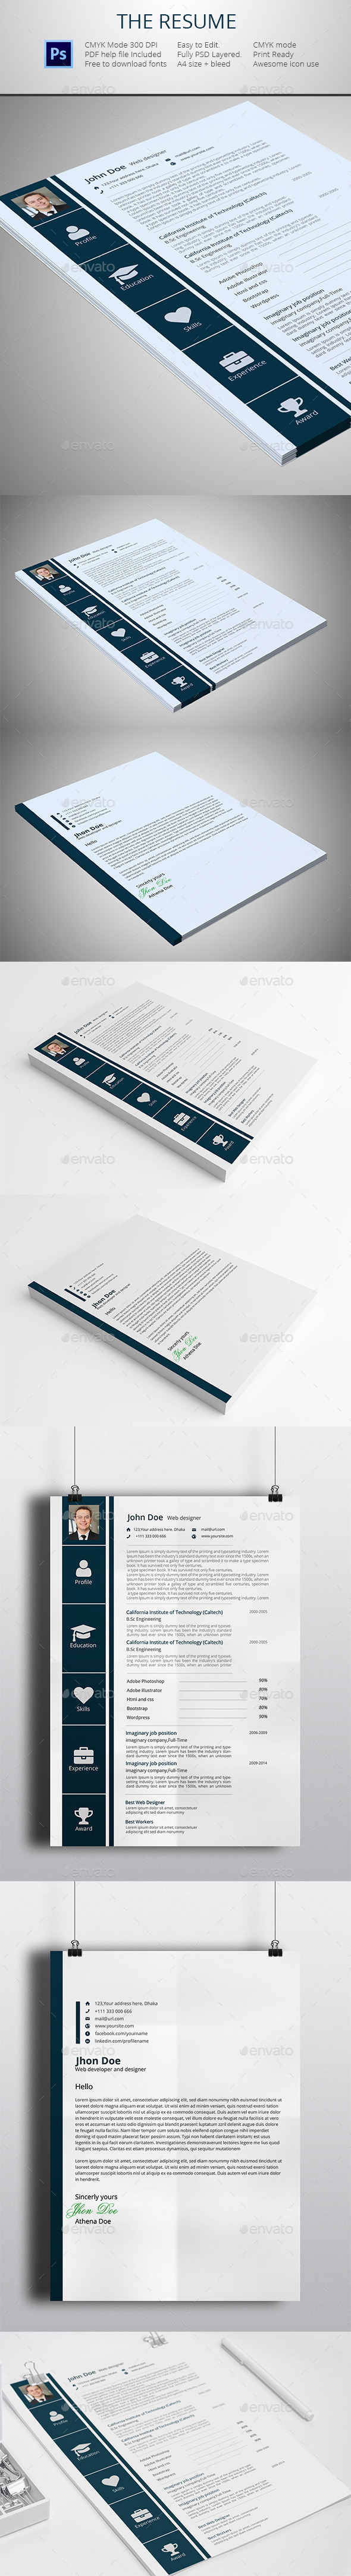 GraphicRiver The Resume 11974093